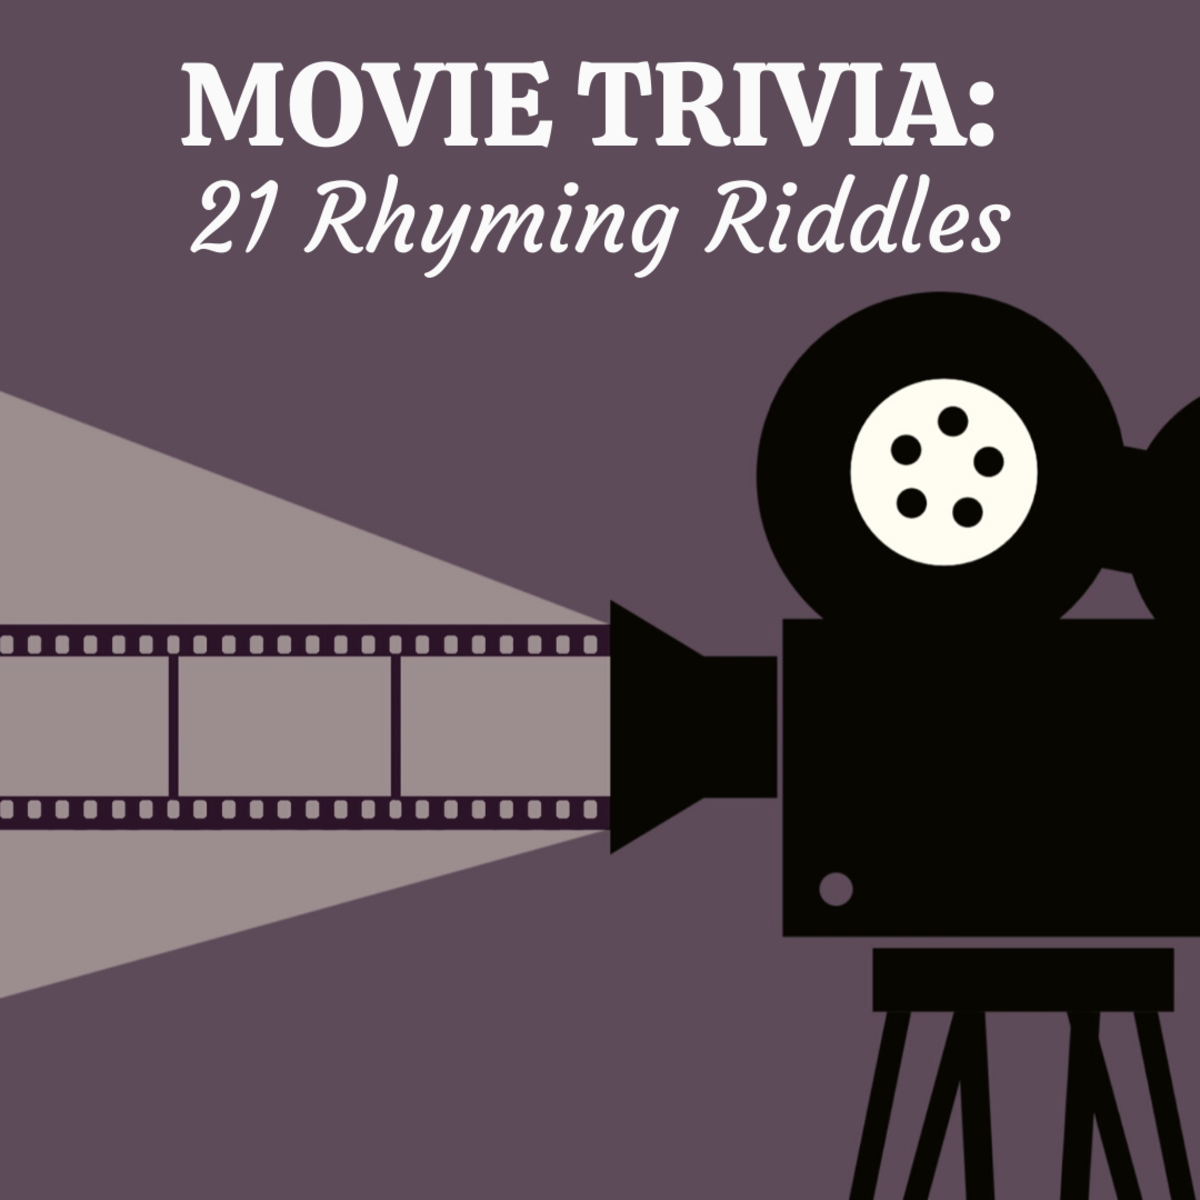 Are you truly a movie buff? Find out here!